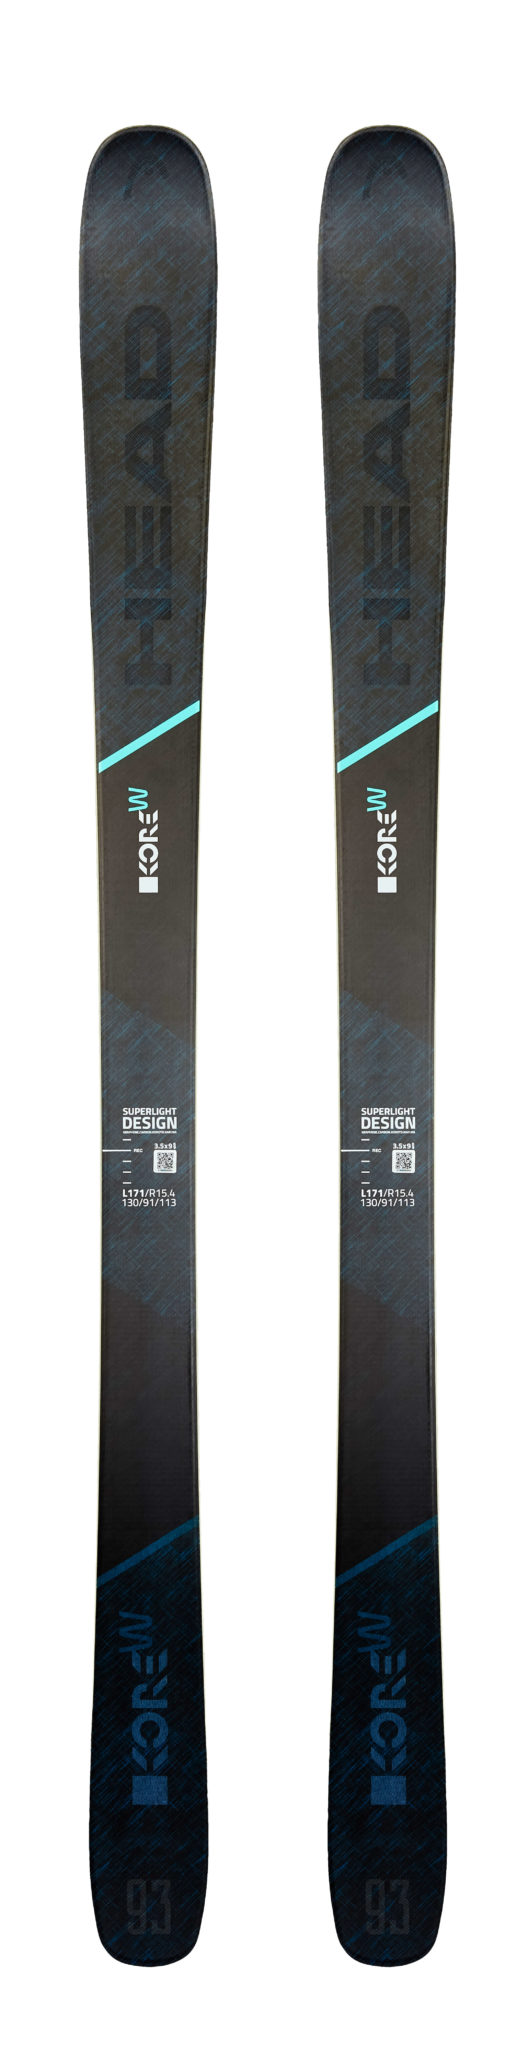 Head Kore 93W Women's Skis (Flat) 2019-20 at Northern Ski Works